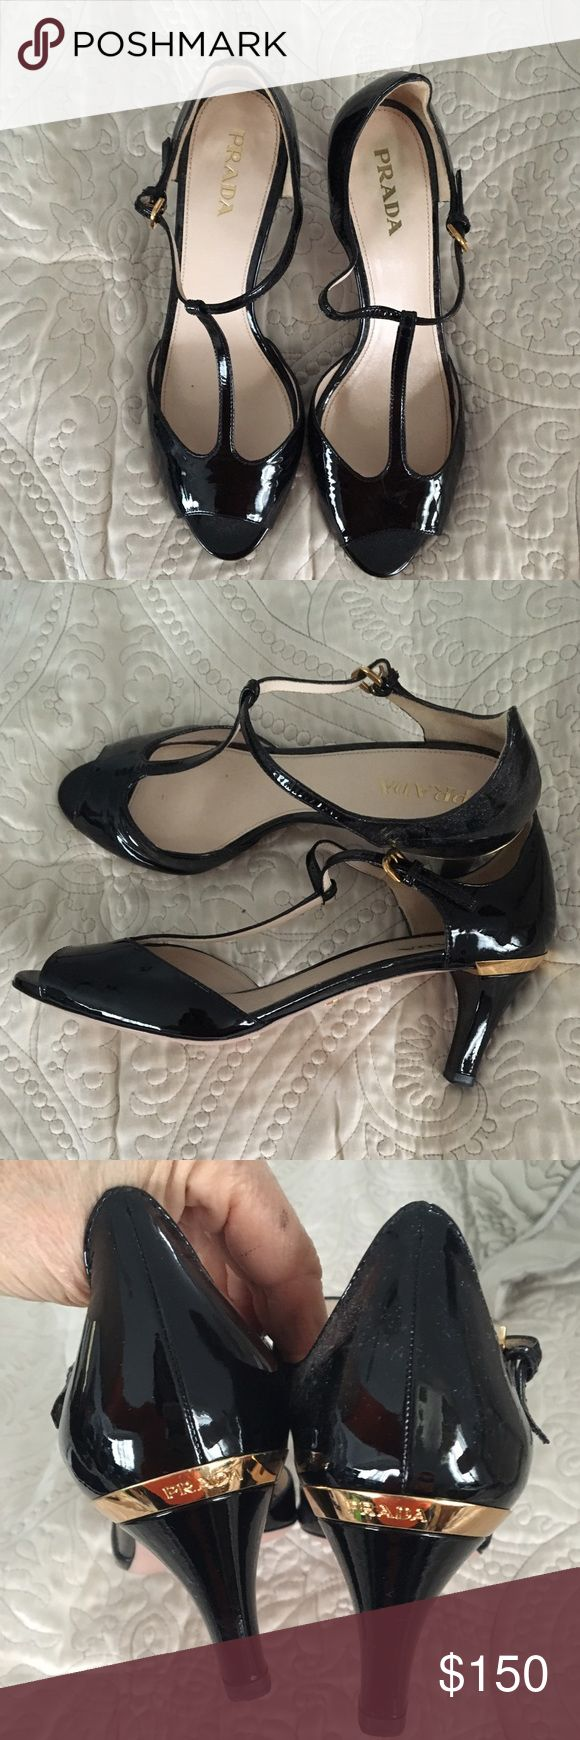 Prada peep toe black patent leather shoes heels 9 Prada black patent with gold trim on heel and t strap at ankle size 39 / 9 preowned in excellent shape Prada Shoes Heels